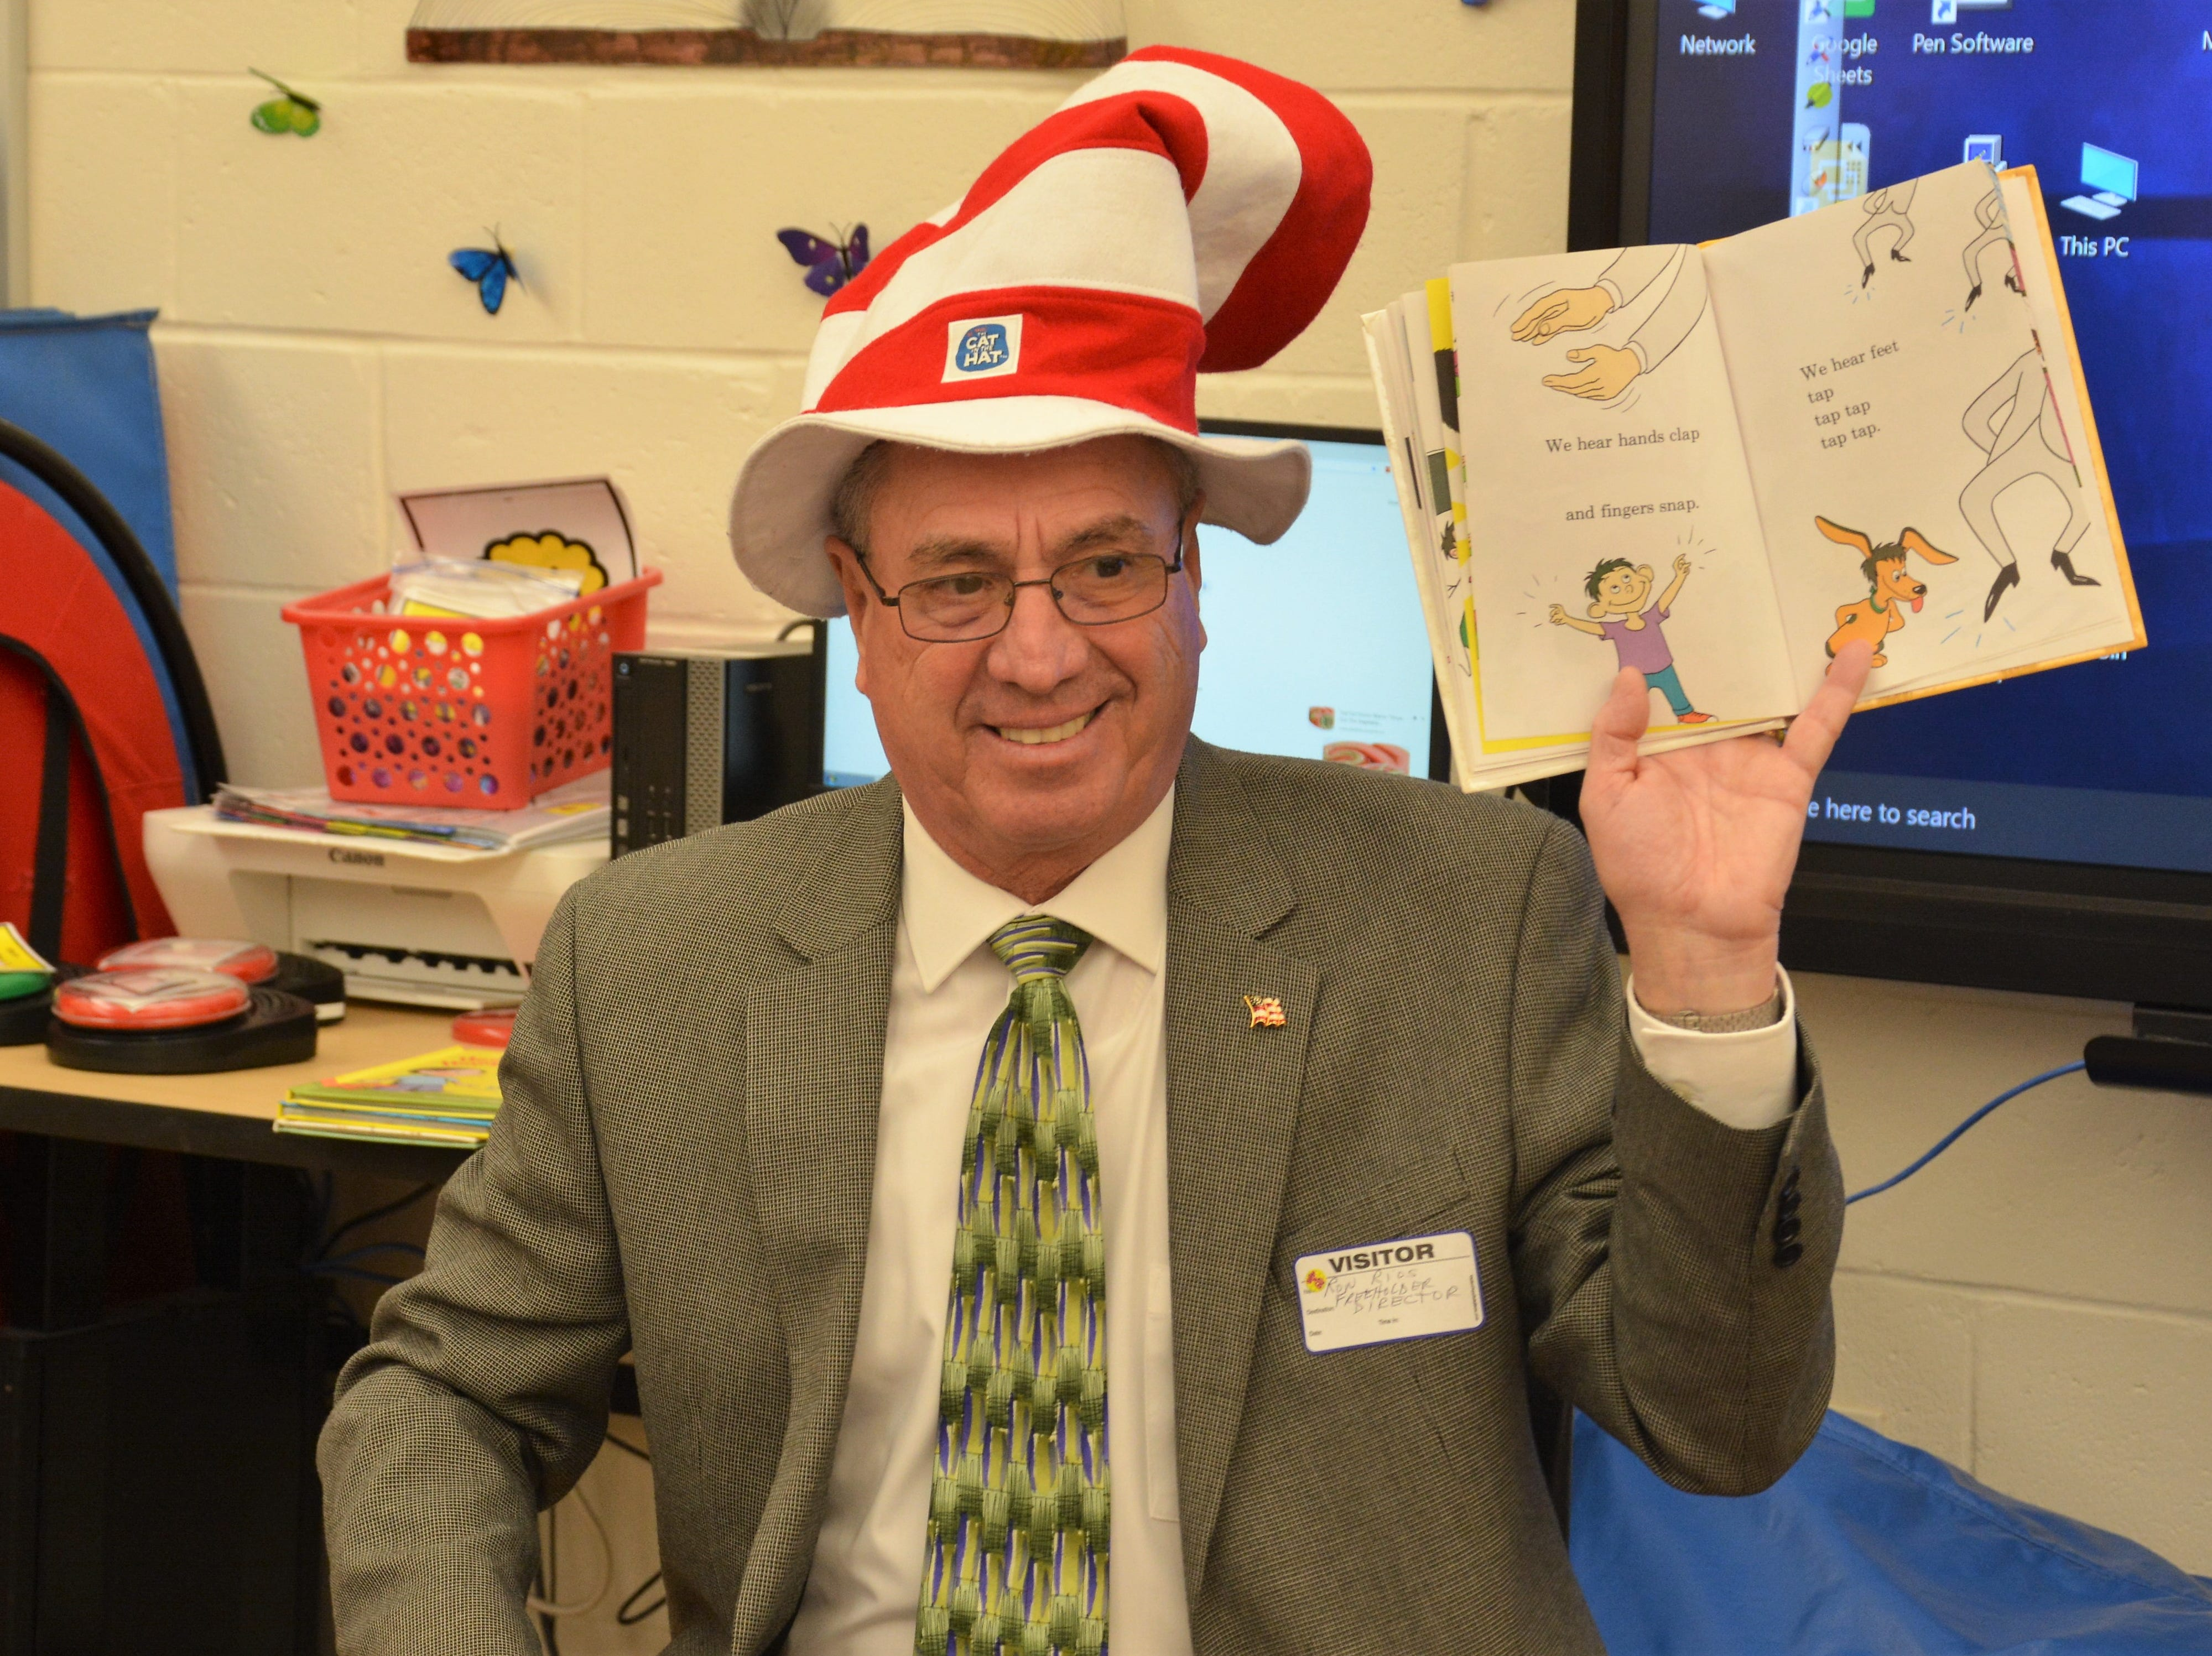 Not everyone likes Green Eggs and Ham, but everyone loves a good book.Middlesex County joined in celebrating Read Across America Day. Middlesex County Freeholder Director Ronald G. Rios (pictured) and Freeholder Kenneth Armwood both participated in events to mark the day by reading to local students and promoting a love of literature. Visithttps://www.youtube.com/watch?v=ALa0MbGlRh8.